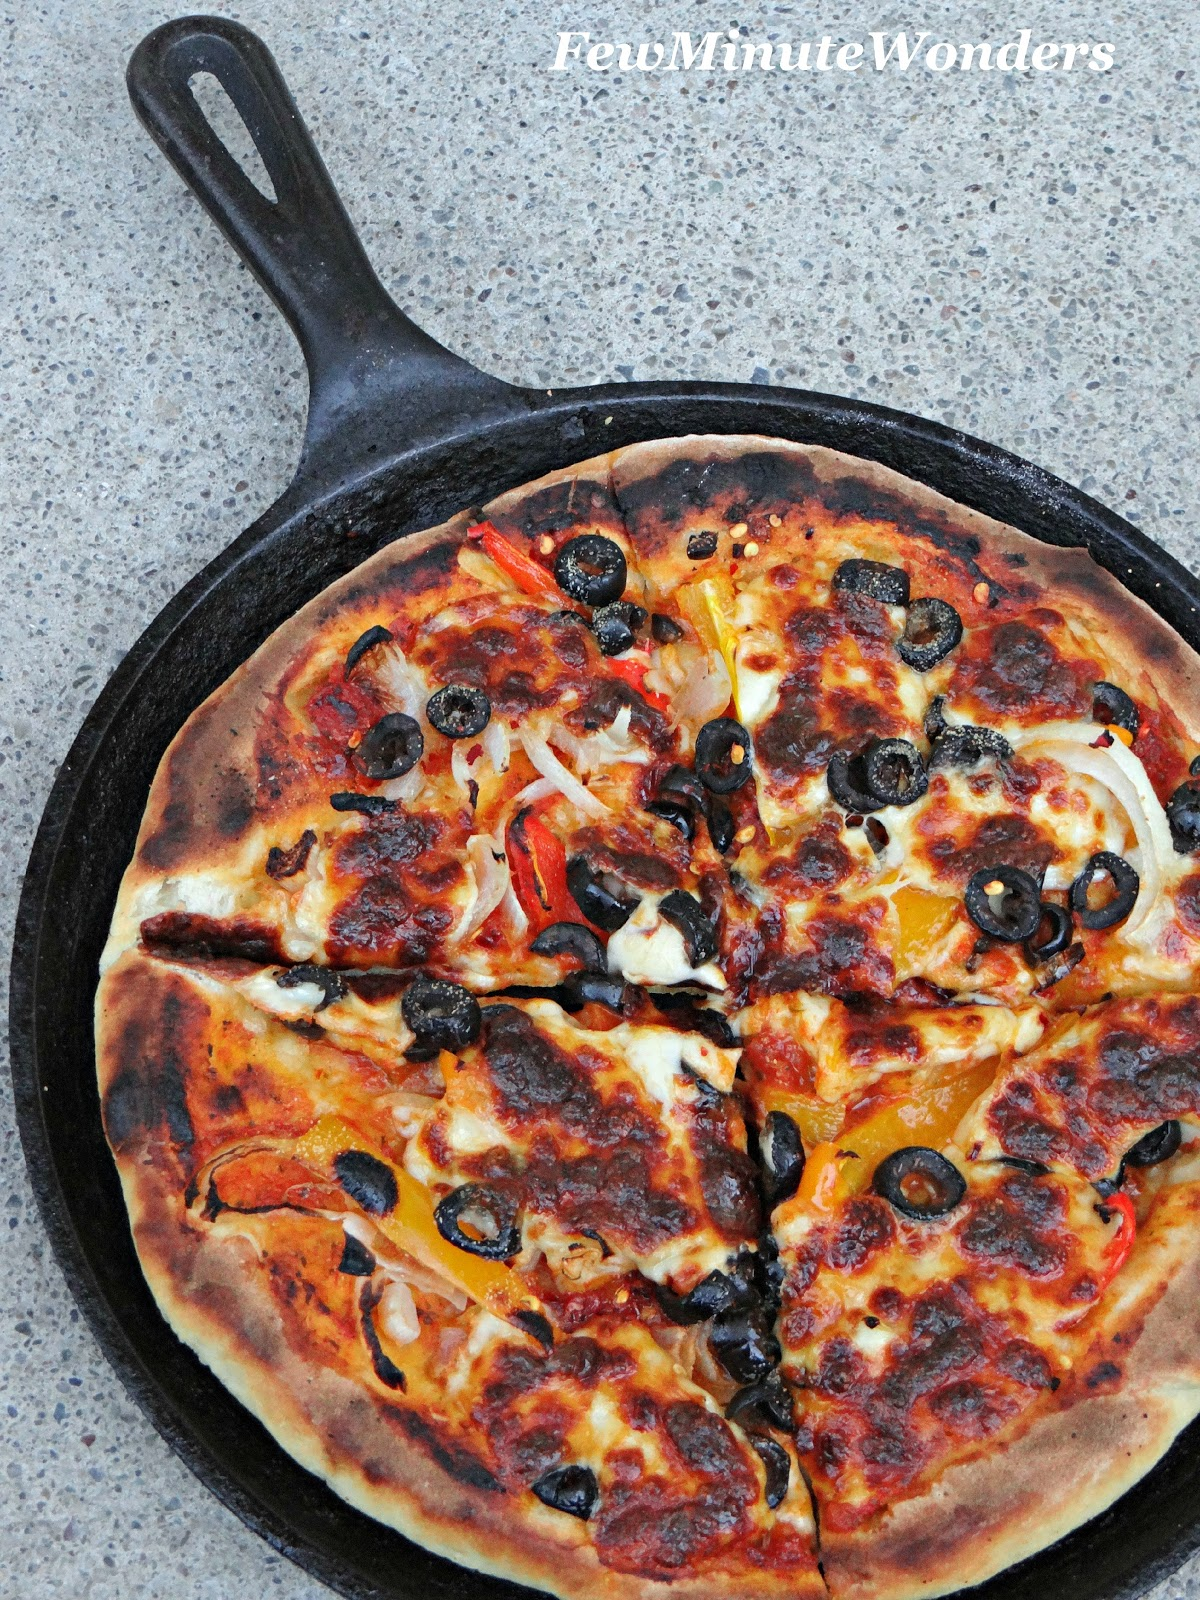 Next Time If You Are In The Mood For A Great Slice Of Pizza Try This Recipe From Jamie Oliver Which You Will Not Be Disappointed With